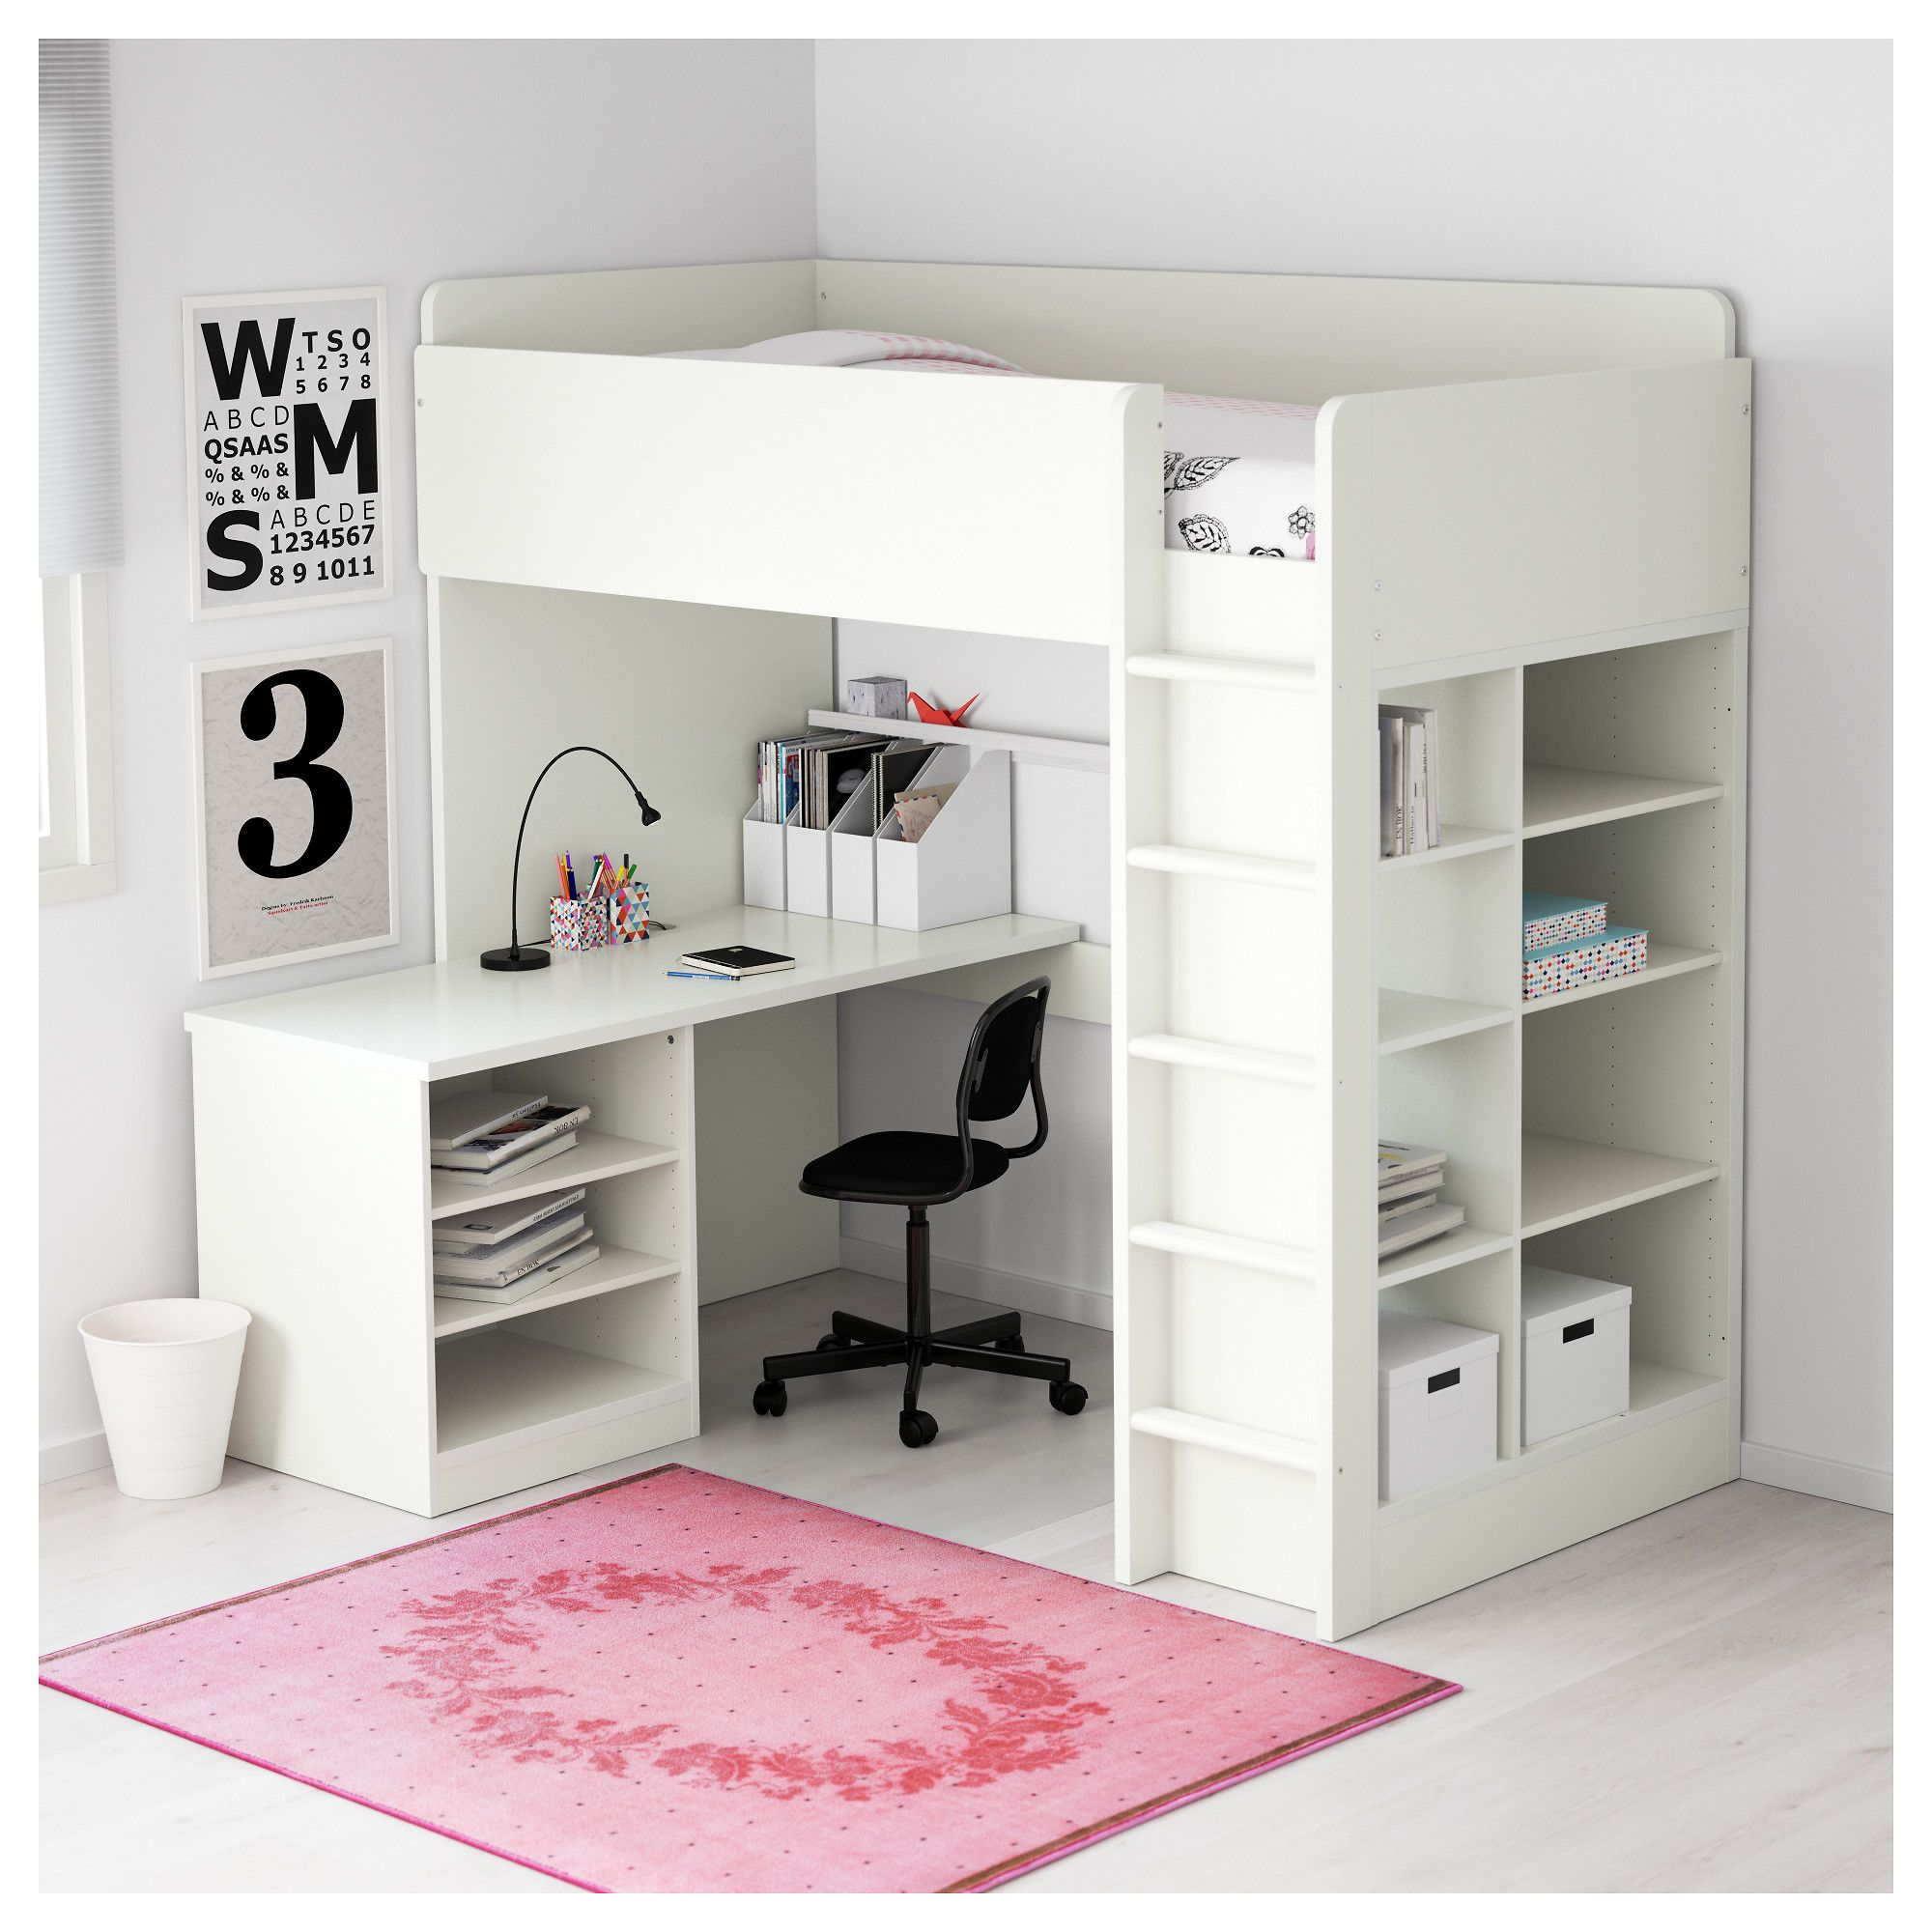 Furniture And Home Furnishings In 2019 Ikea Bedroom Stuva